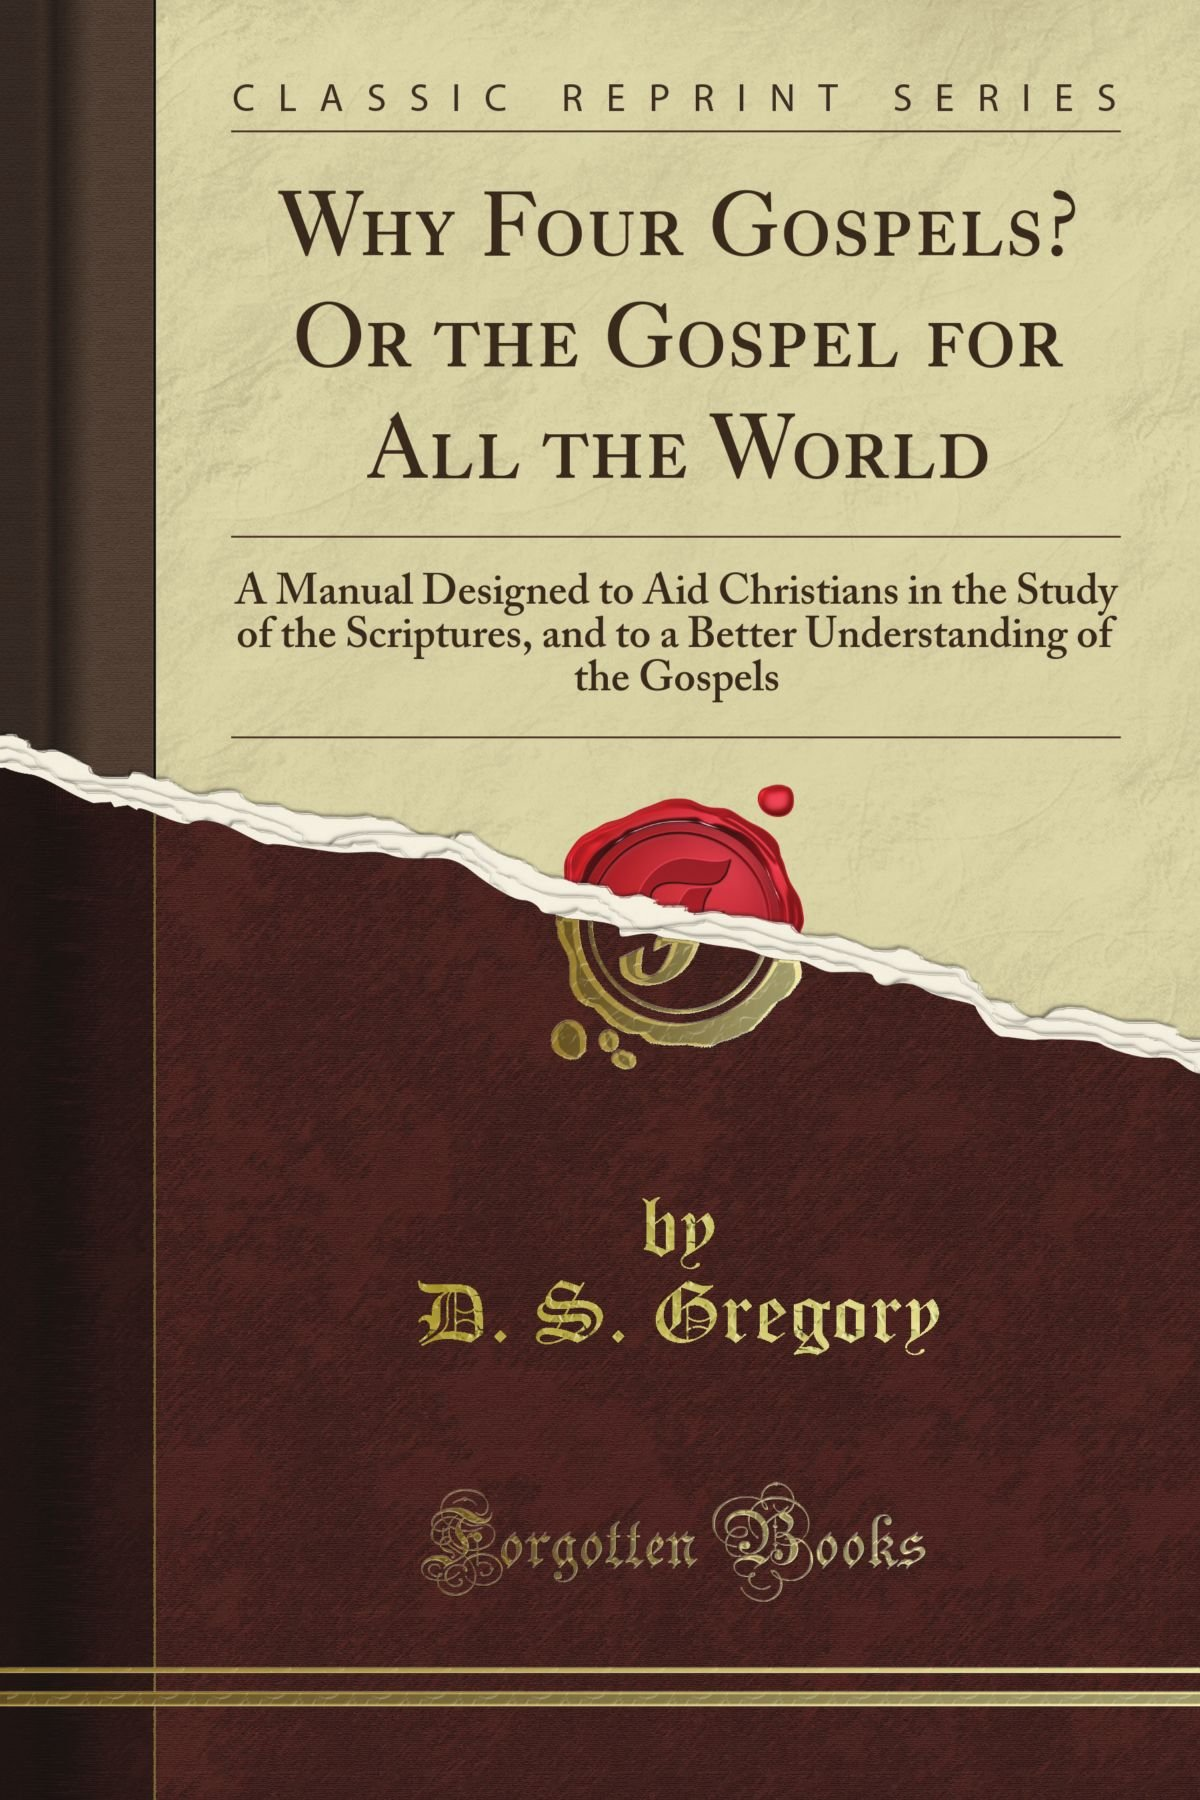 Why Four Gospels? Or the Gospel for All the World: A Manual Designed to Aid Christians in the Study of the Scriptures, and to a Better Understanding of the Gospels (Classic Reprint) pdf epub